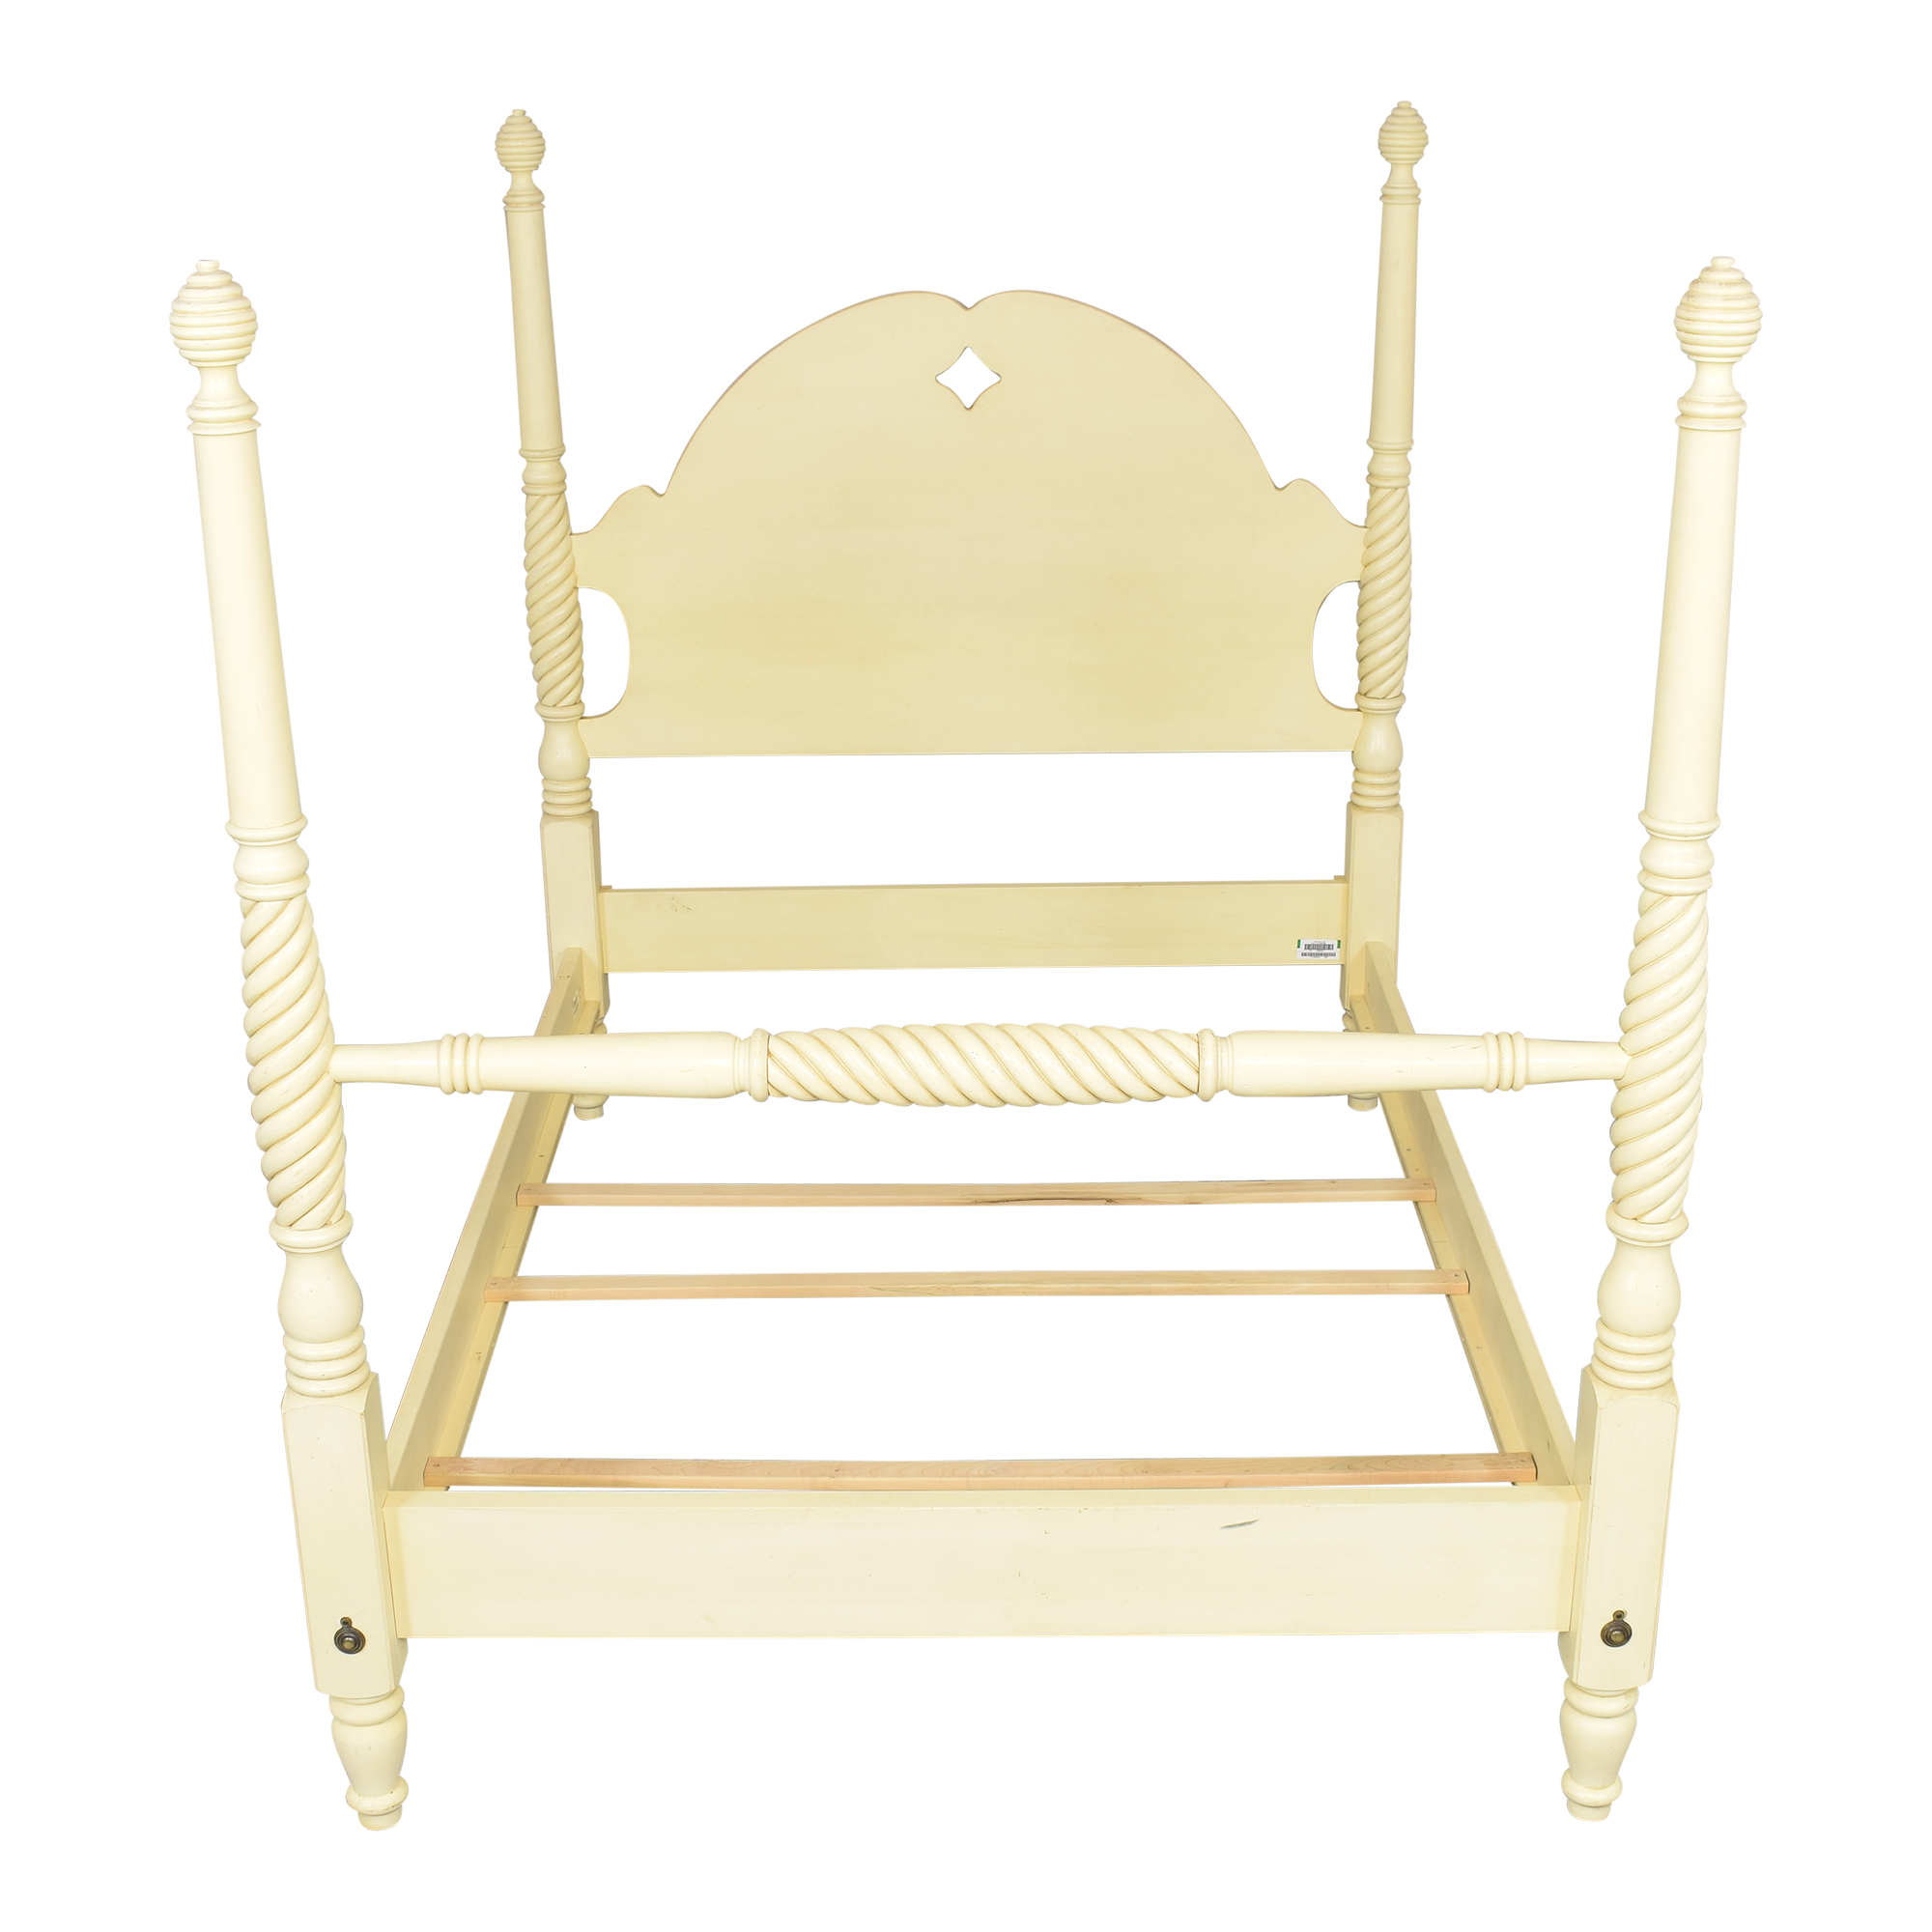 Ethan Allen Ethan Allen Country Crossings Four Poster Full Bed used